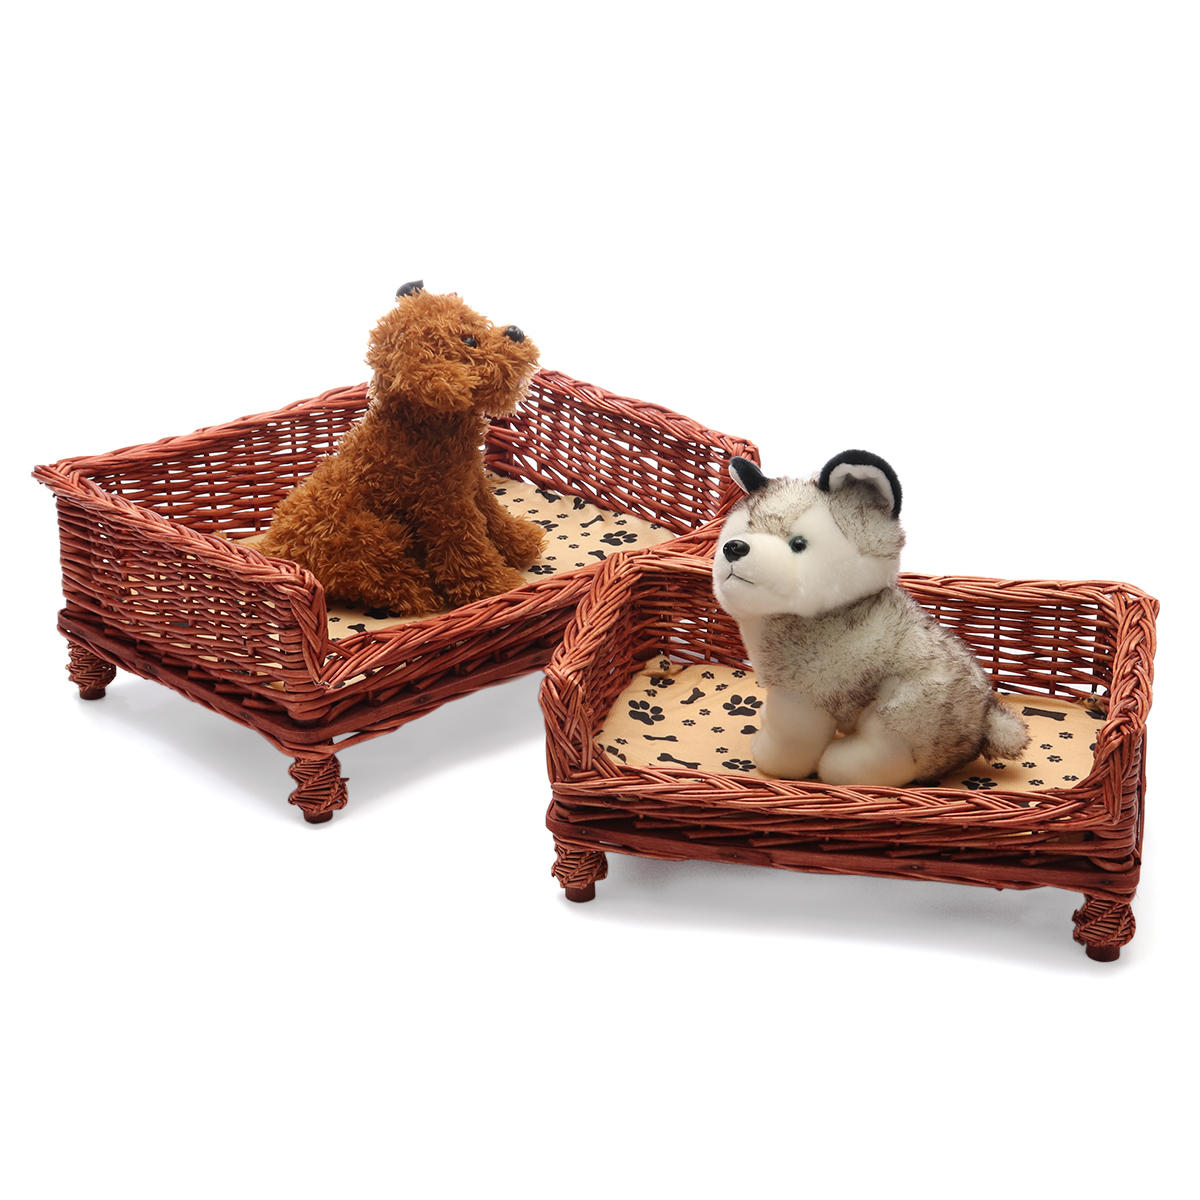 HAND WOVEN Wicker Pet Bed Dog Cat Basket Shabby Chic Sleeping Durable Washable